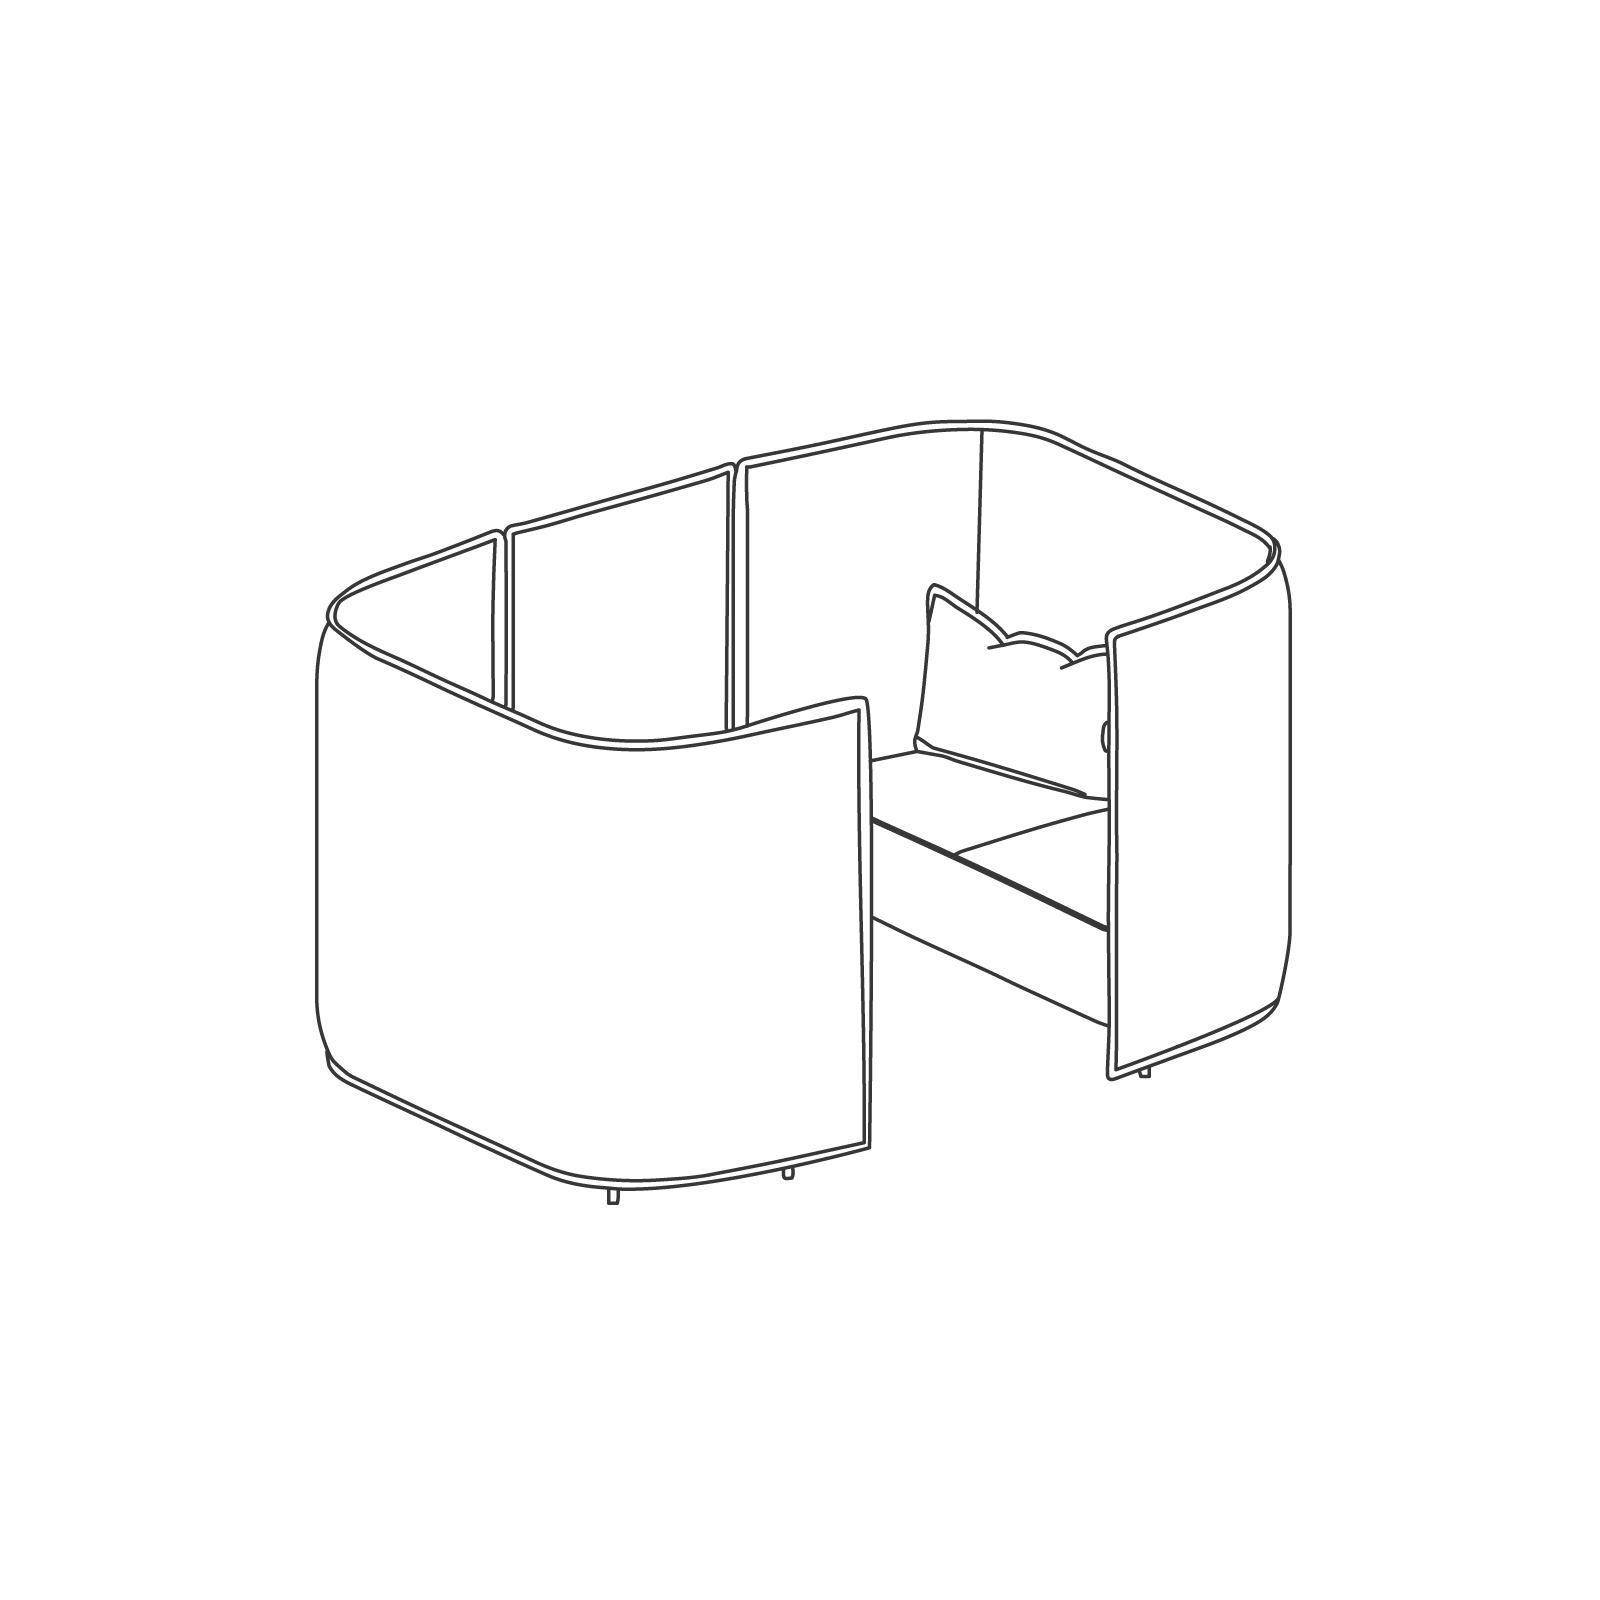 A line drawing of Cloud Plain Booth–2 Seat.